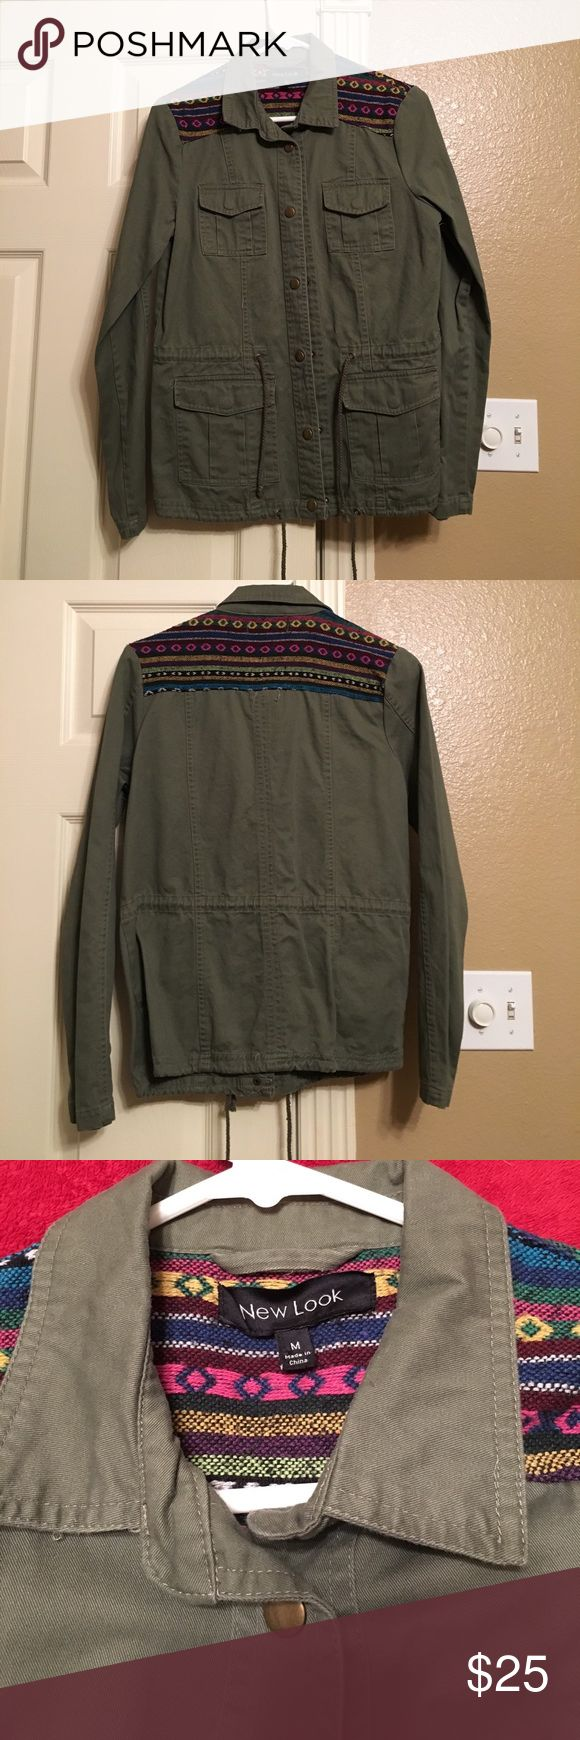 NEW LOOK GREEN Jacket New Look Army Green Jacket. Excellent condition. Long sleeve with snaps up the front. Also has string around waist and bottom. On shoulders a multi colored pattern- very cute and stylish! New Look Jackets & Coats Jean Jackets